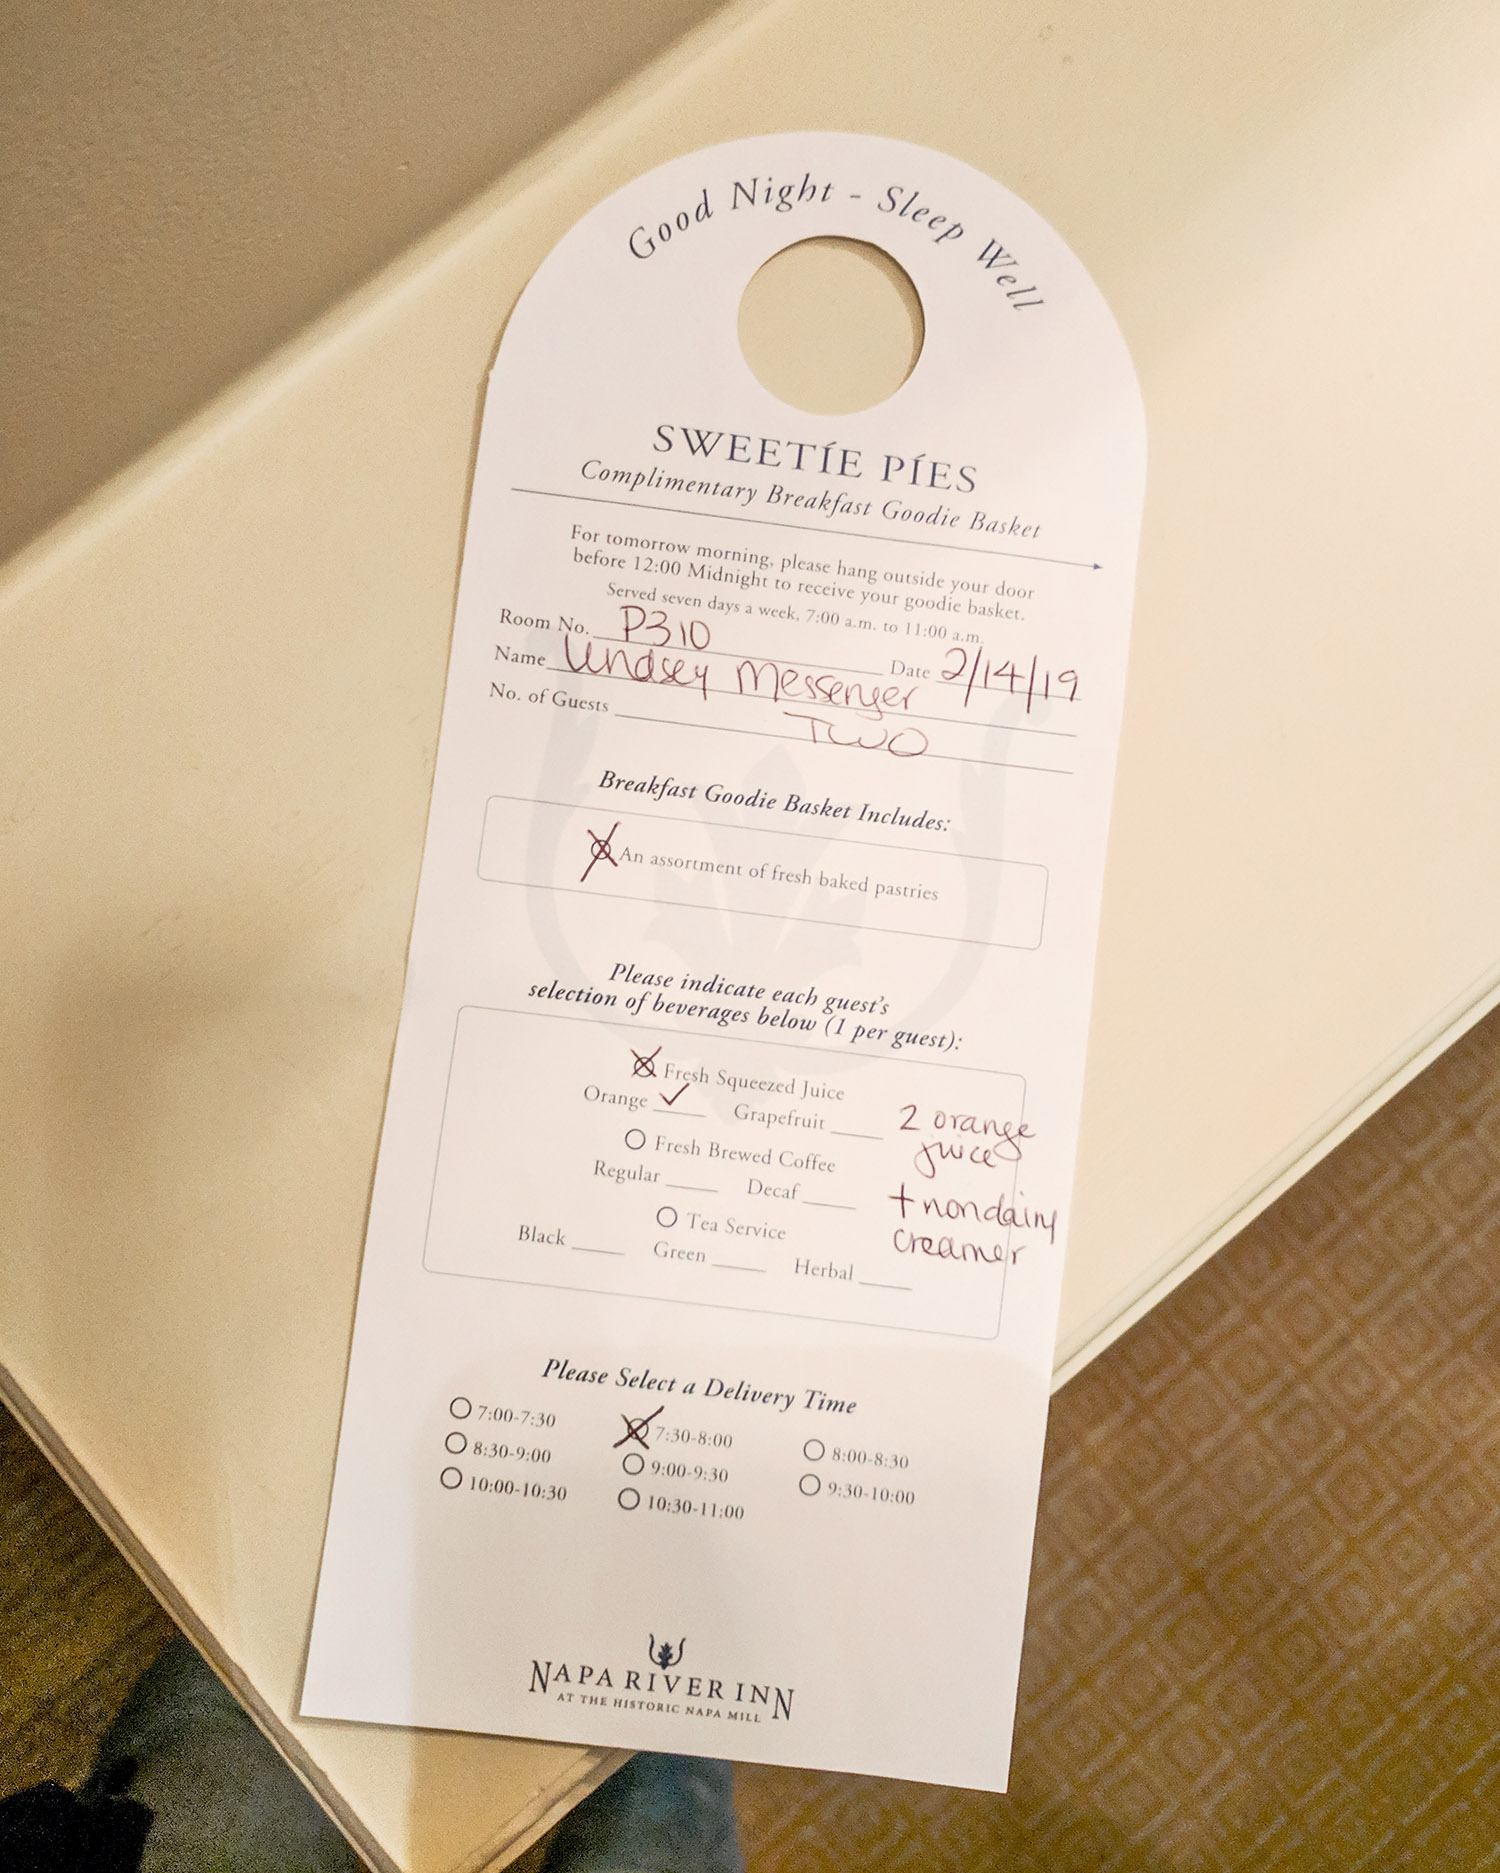 Napa River Inn breakfast menu.jpg